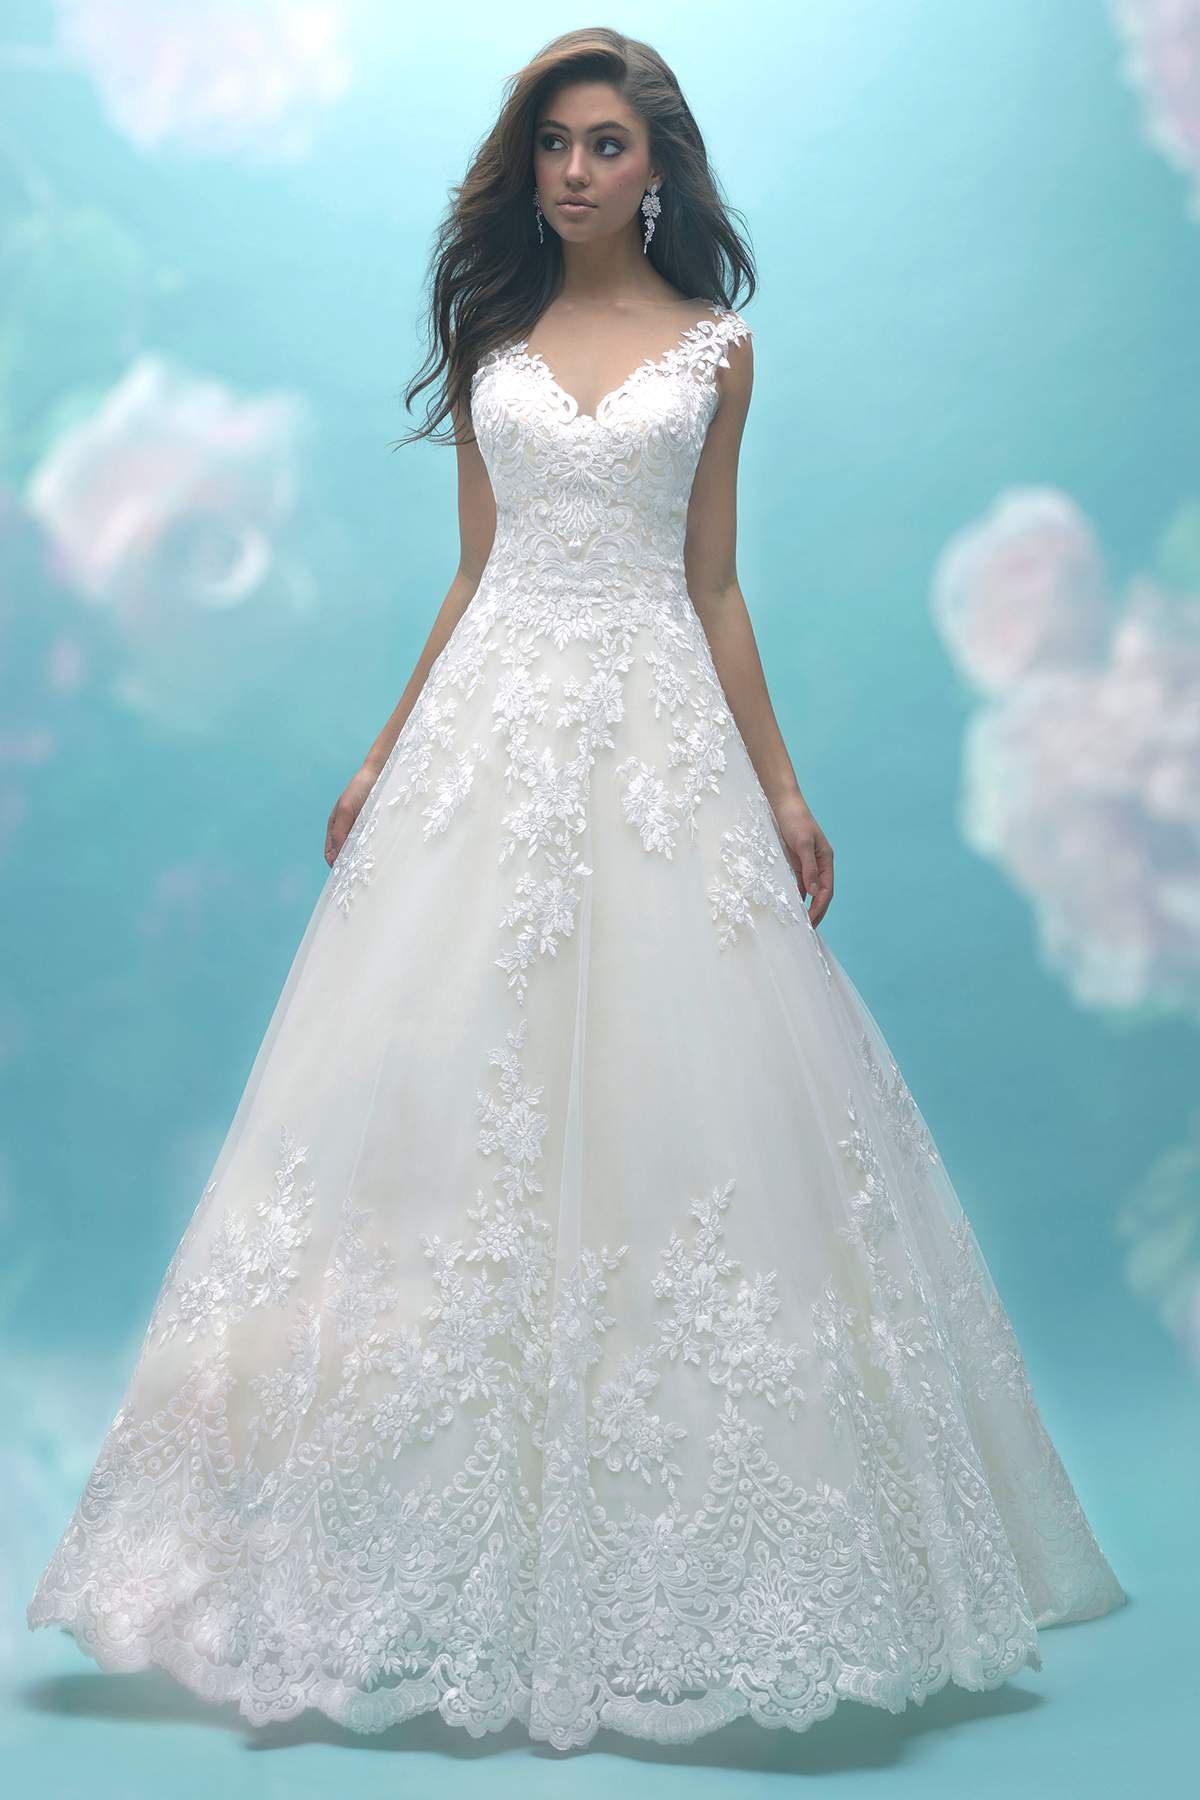 6f12e68d301 Style 9470 by Allure Bridals - Find Your Dream Dress